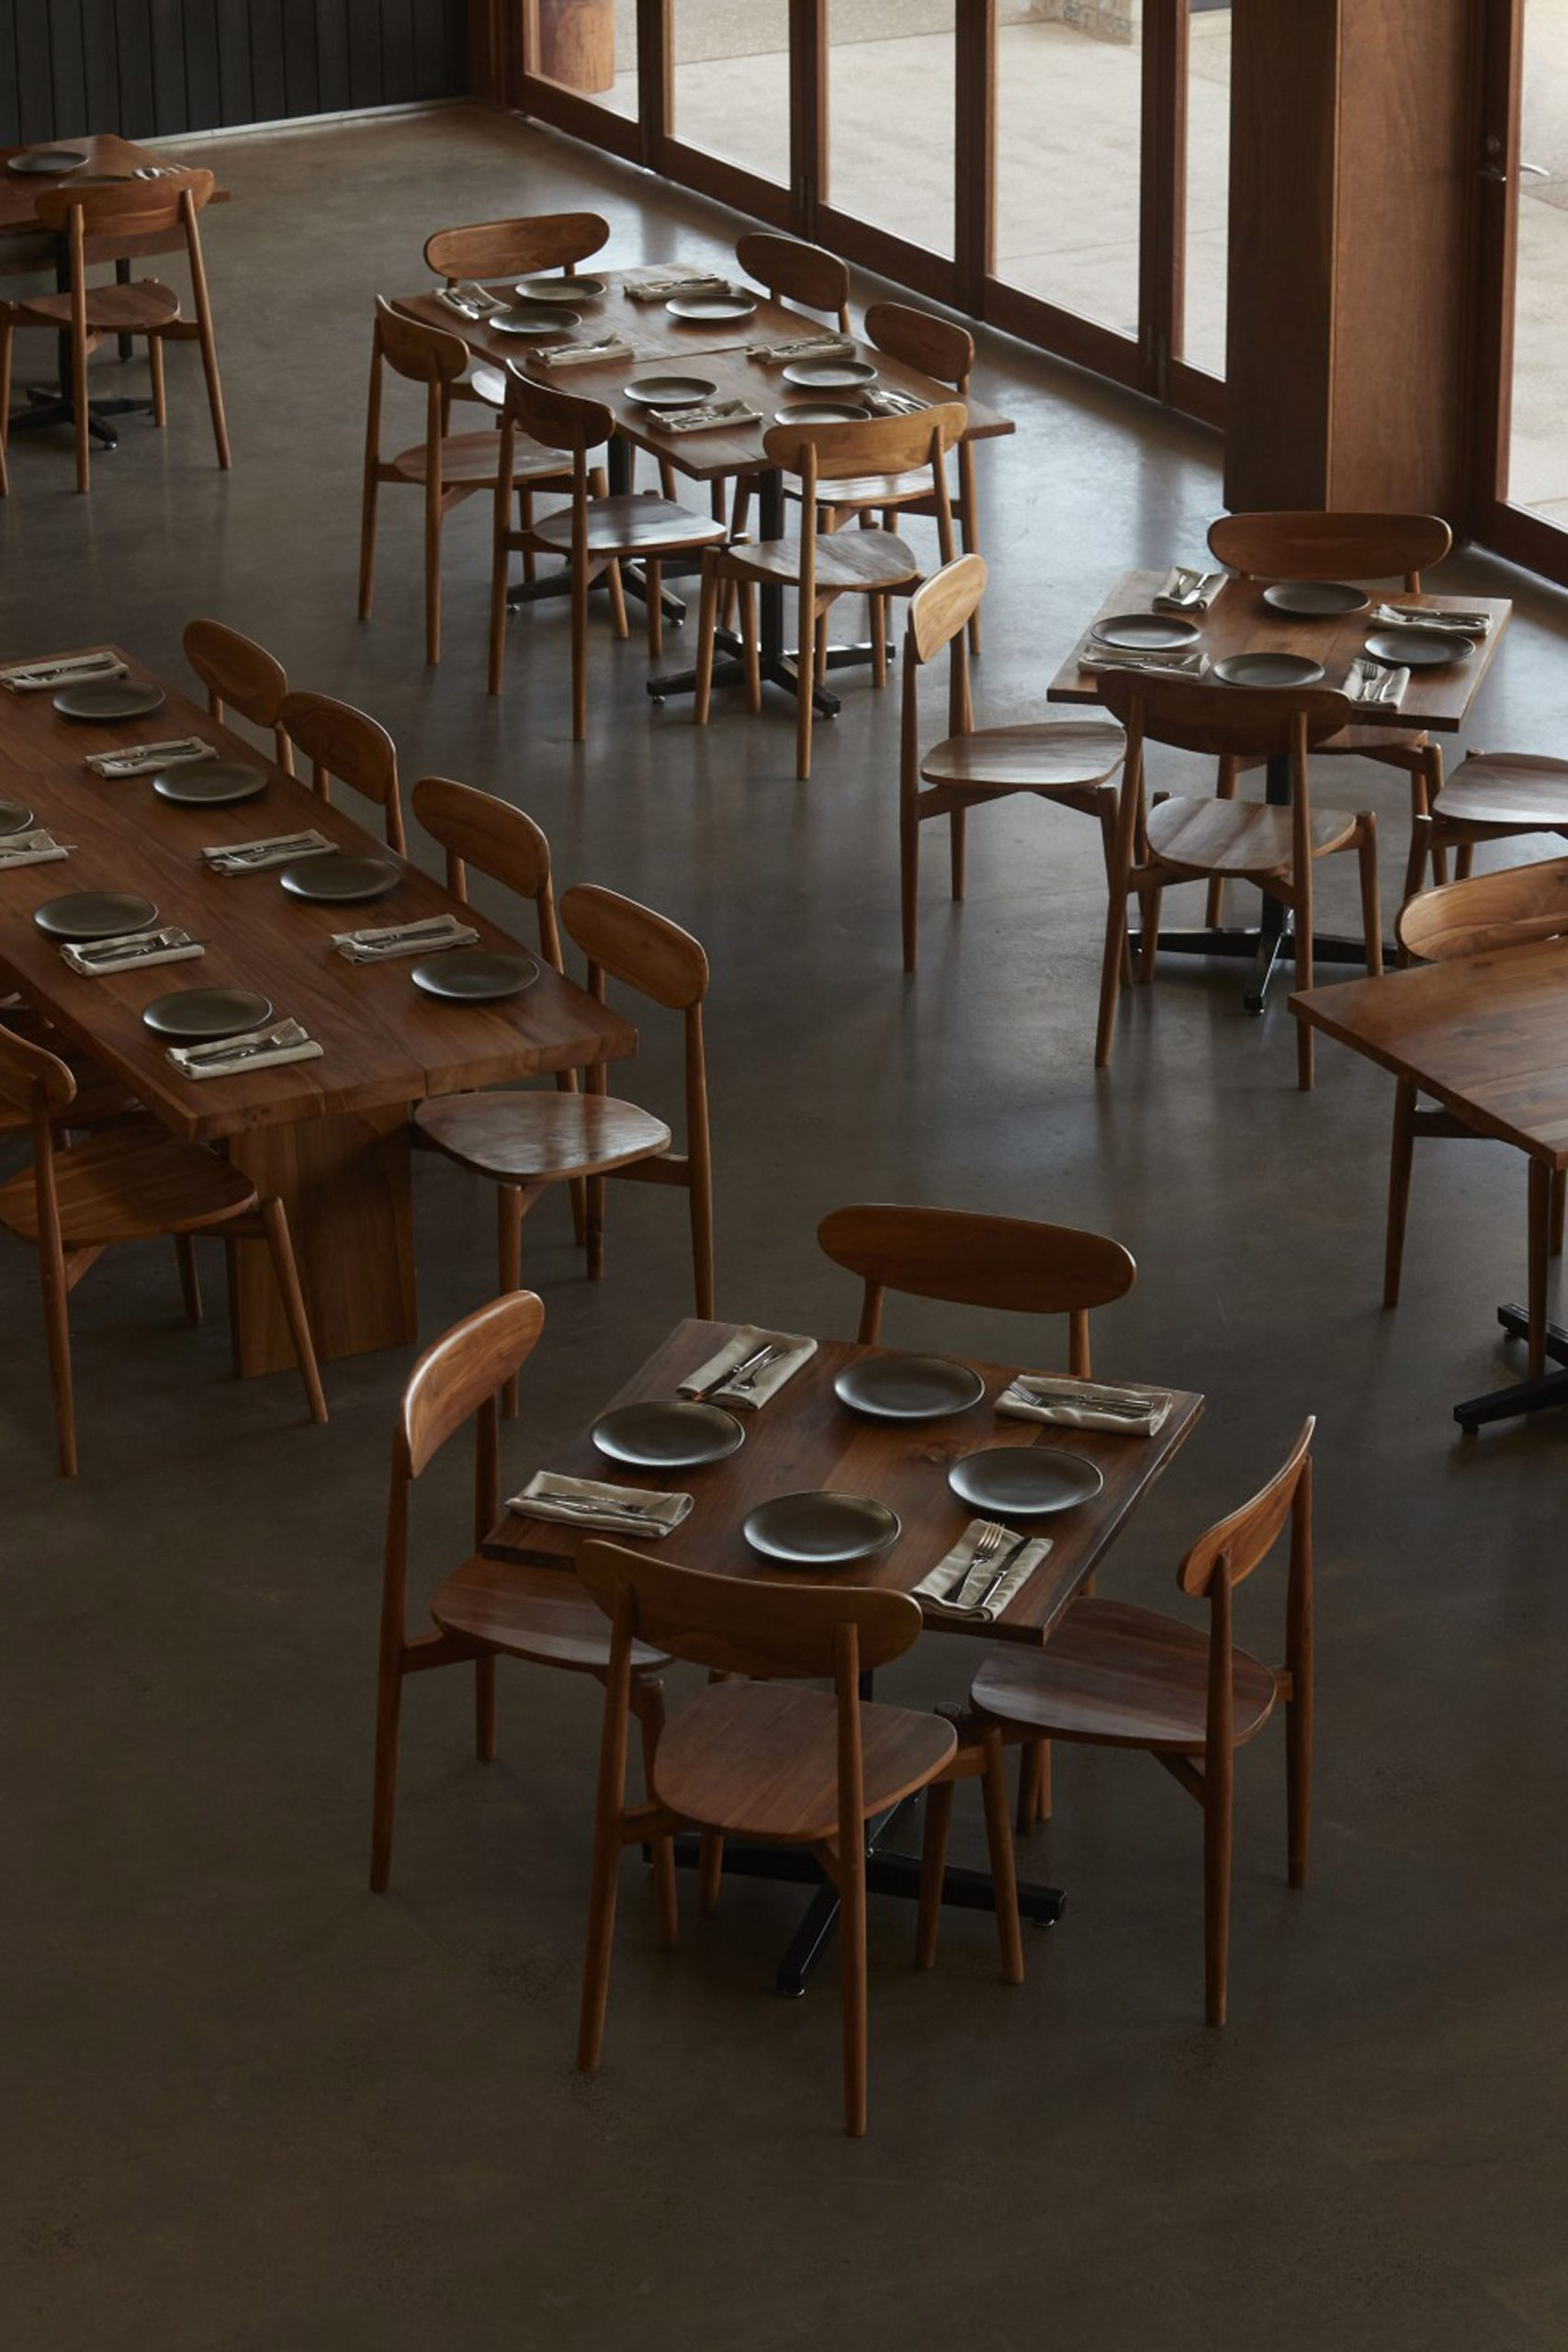 Wooden dining tables and chairs on concrete floor in Three Blue Ducks restaurant by Pattern